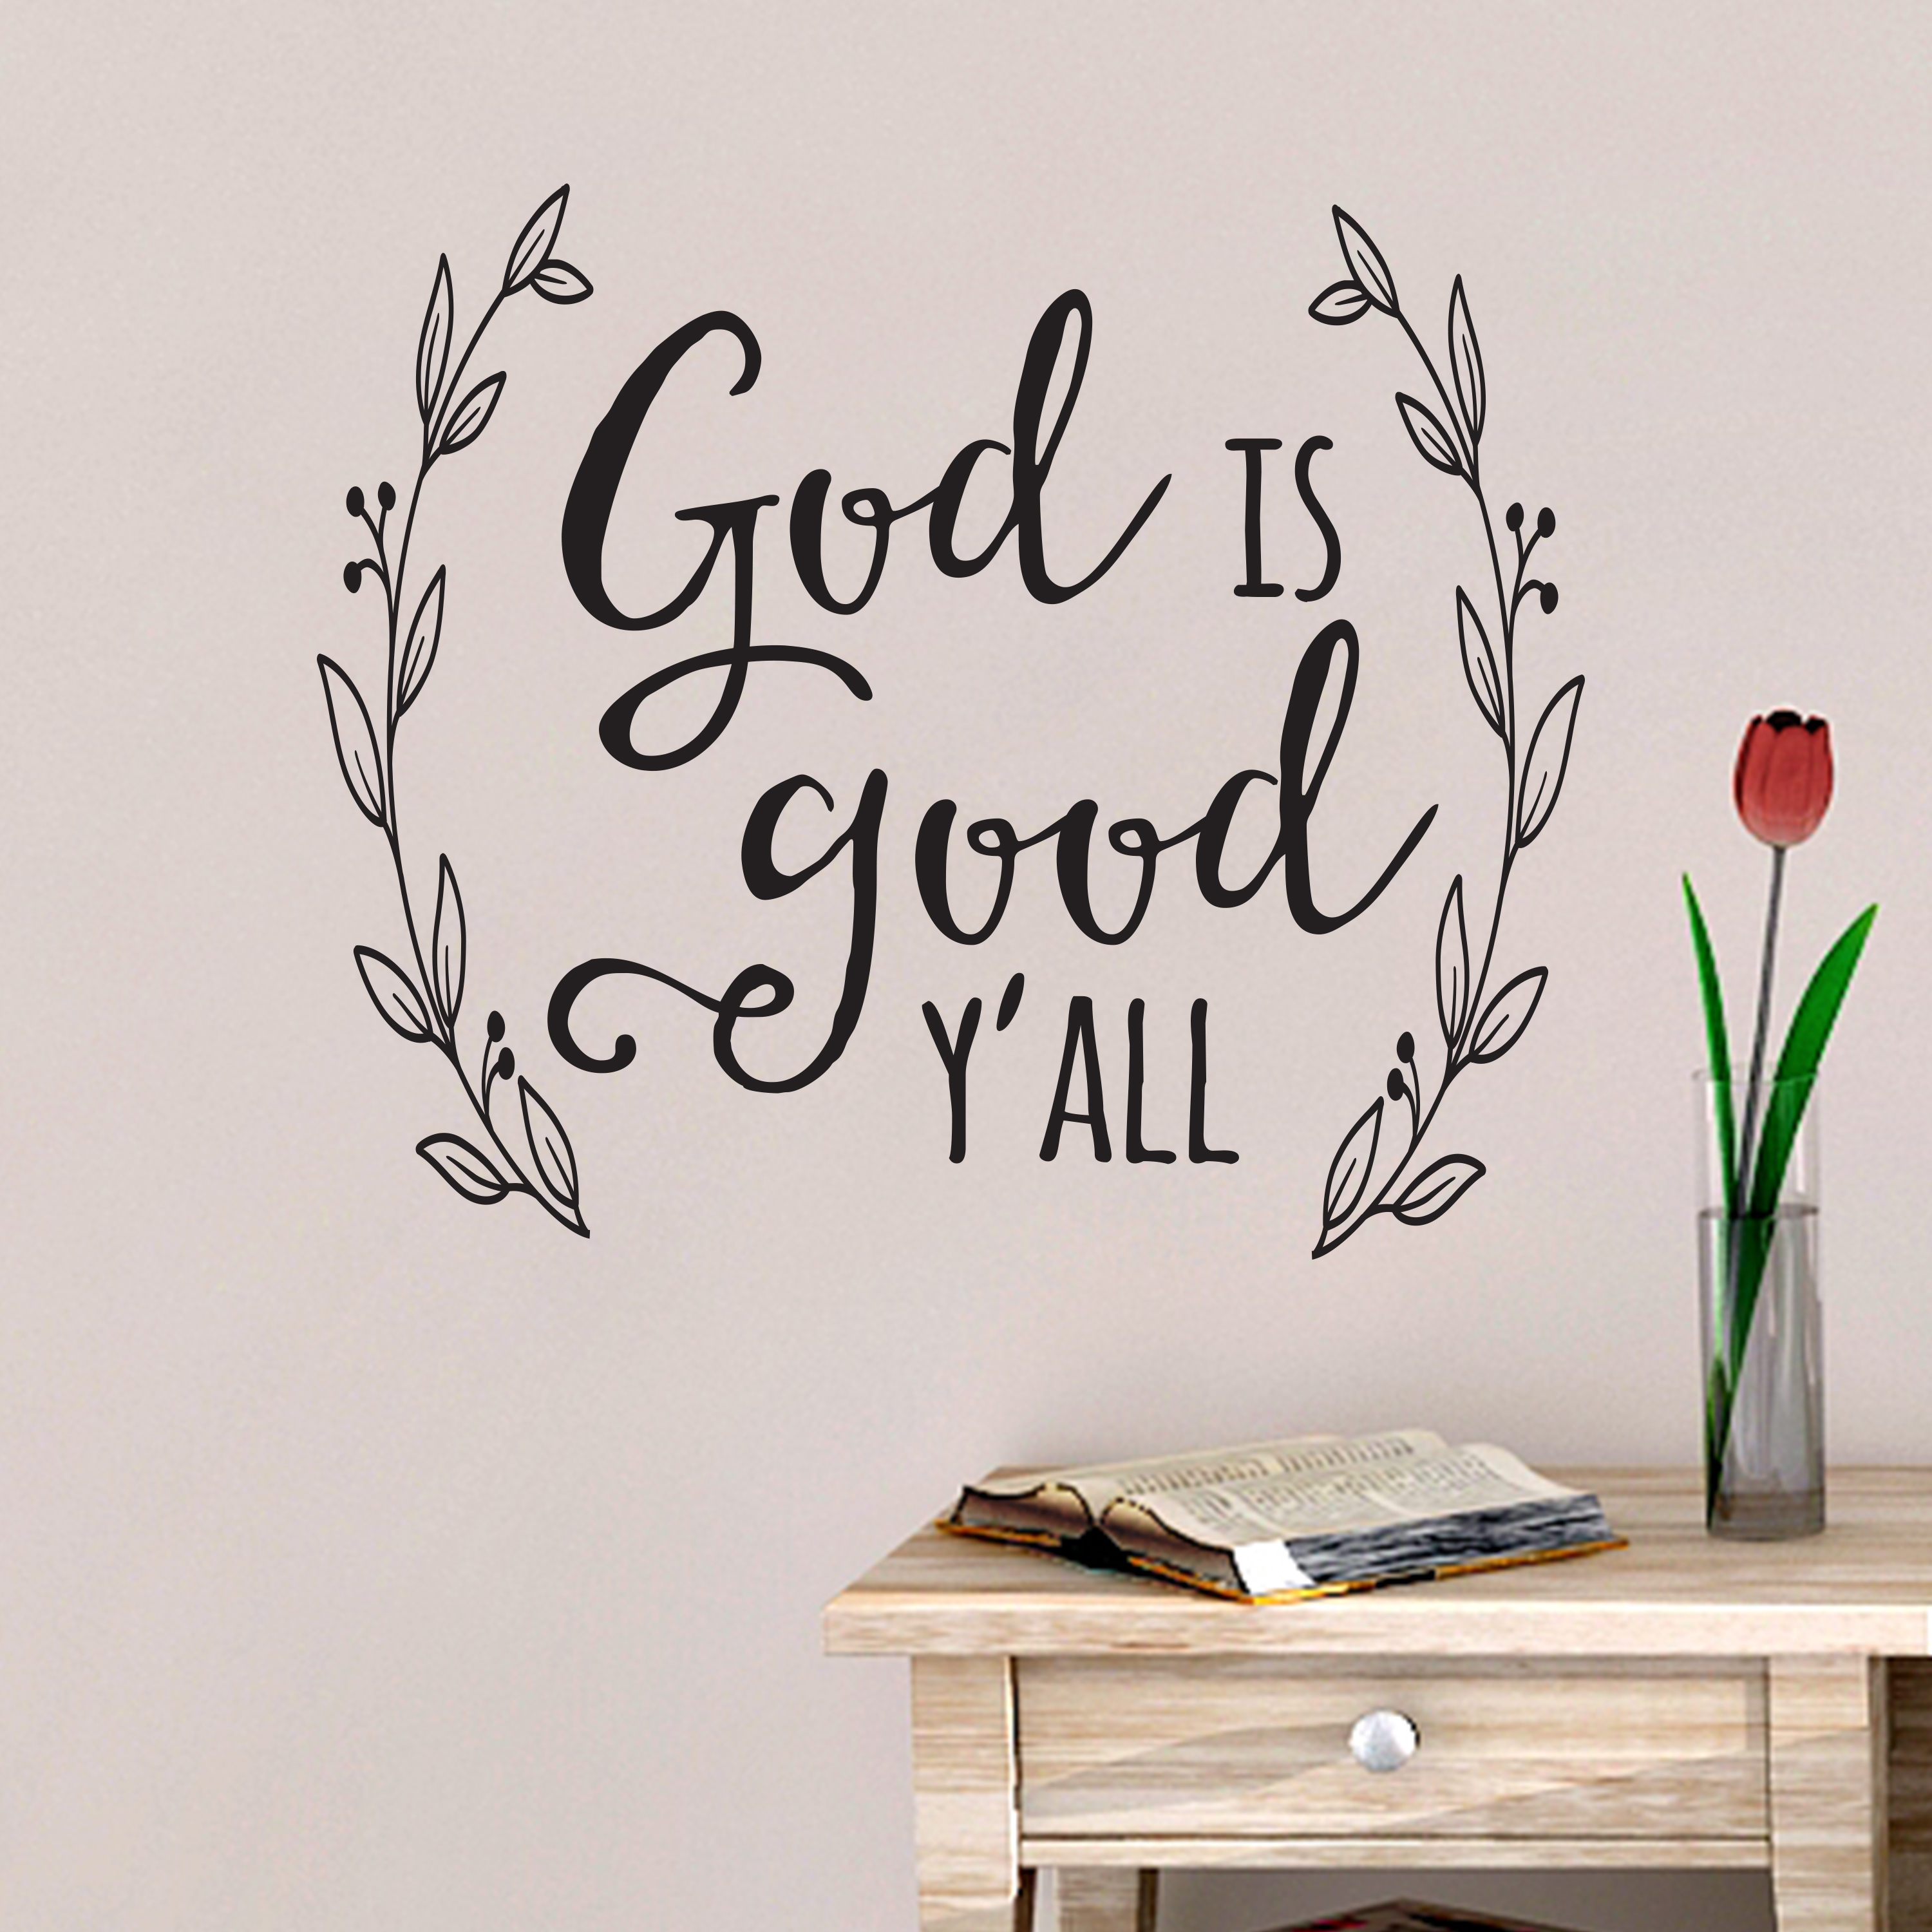 God is Great Vinyl Wall Decal Sticker